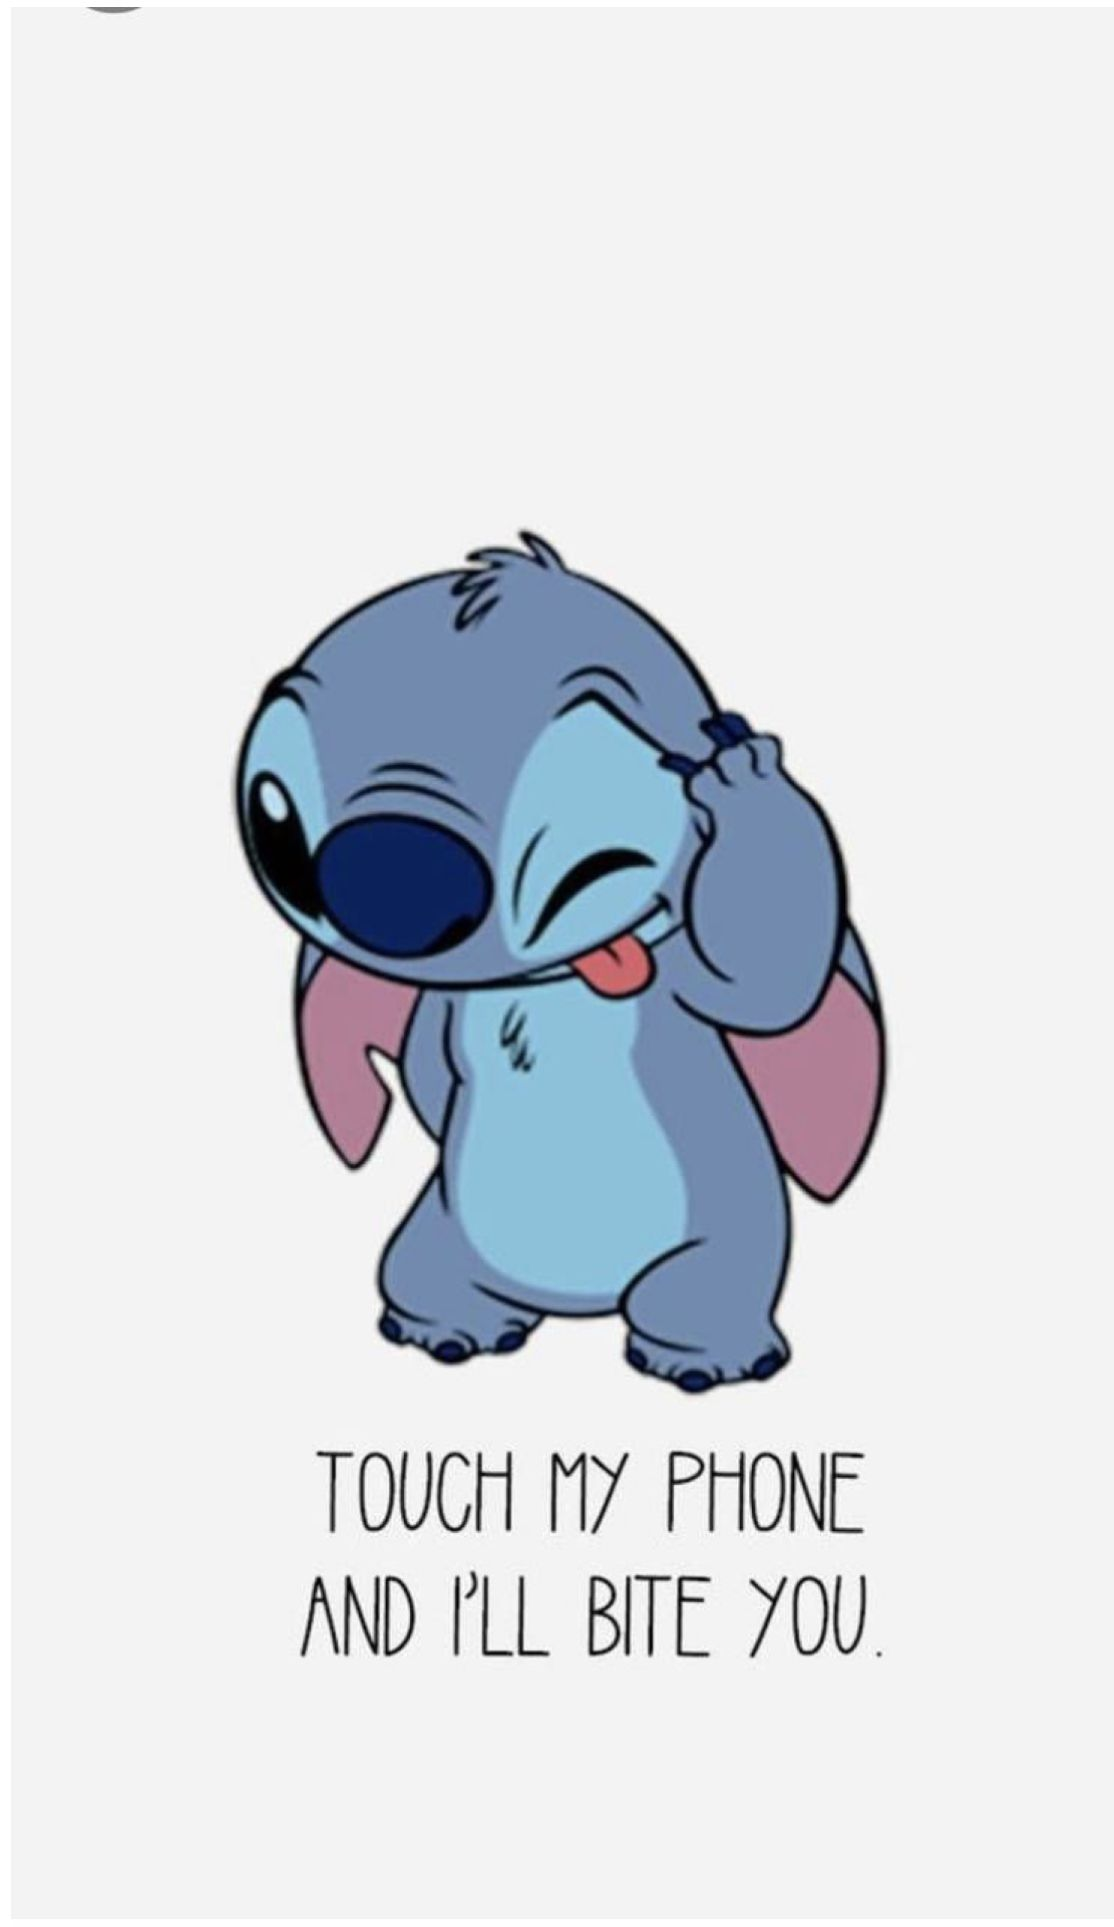 Pin By Nahomi R On Disney Funny Iphone Wallpaper Disney Phone Wallpaper Funny Phone Wallpaper